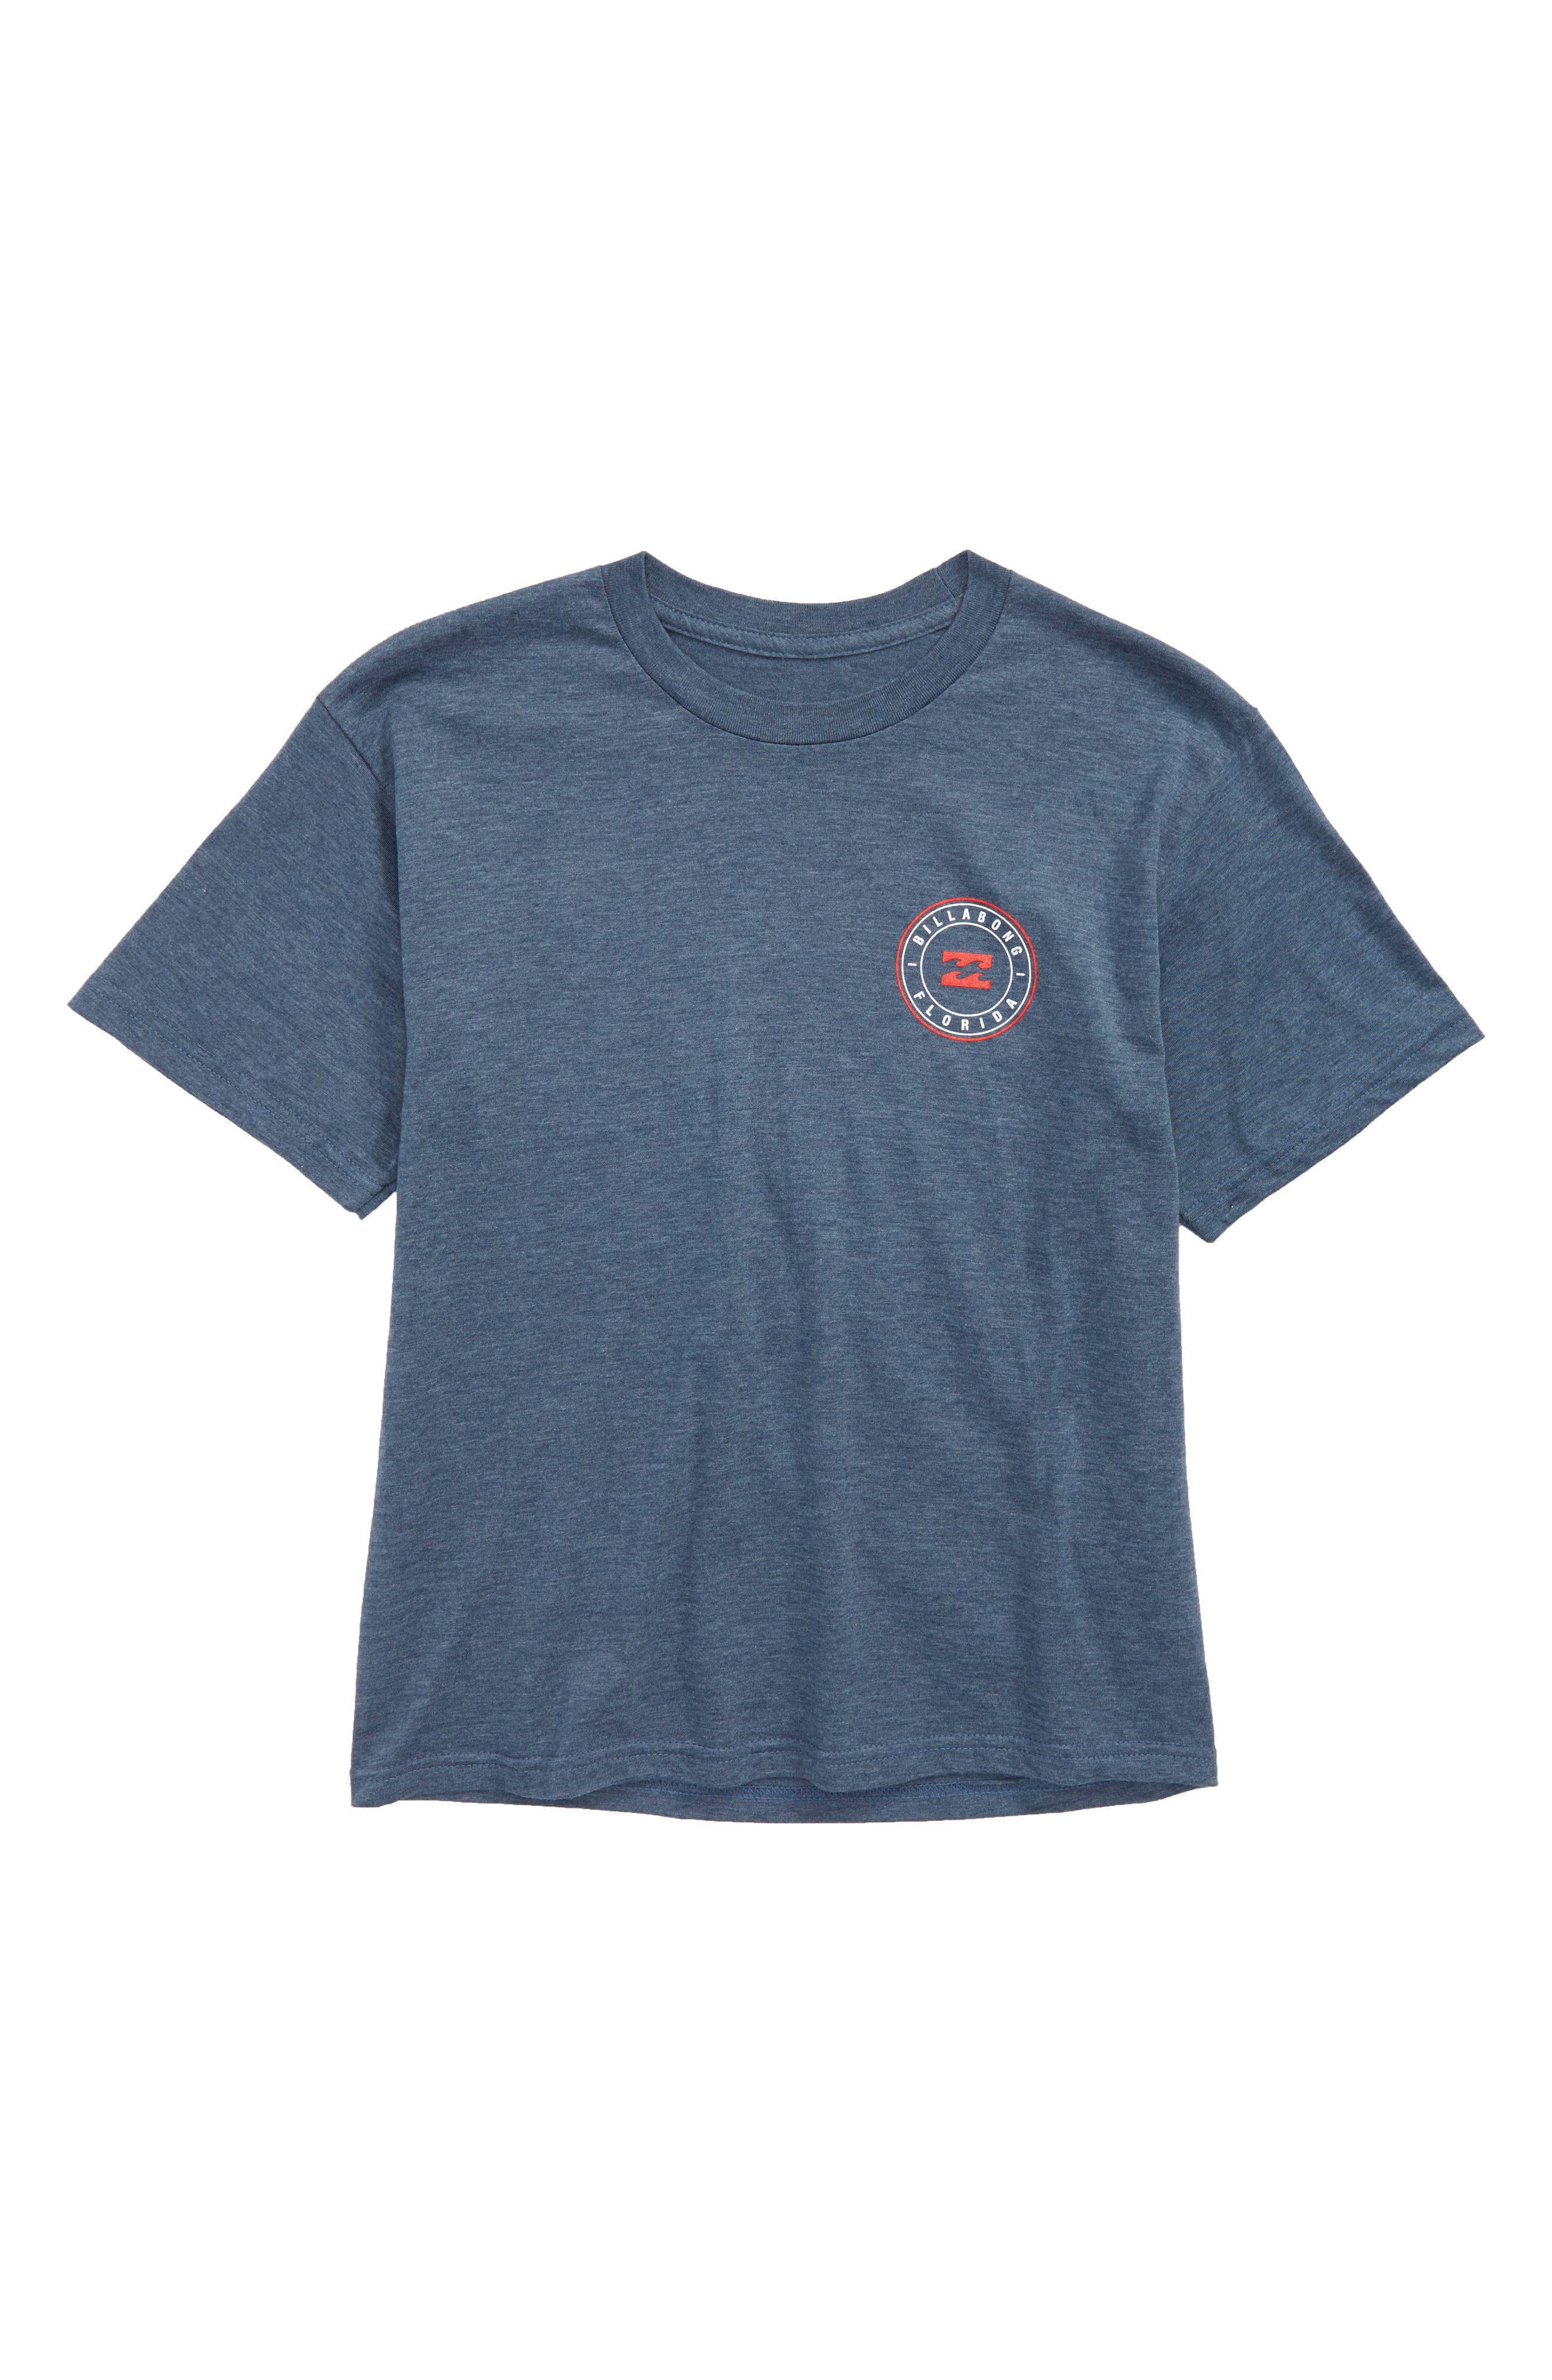 Native Rotor FL T-Shirt,                             Main thumbnail 1, color,                             404